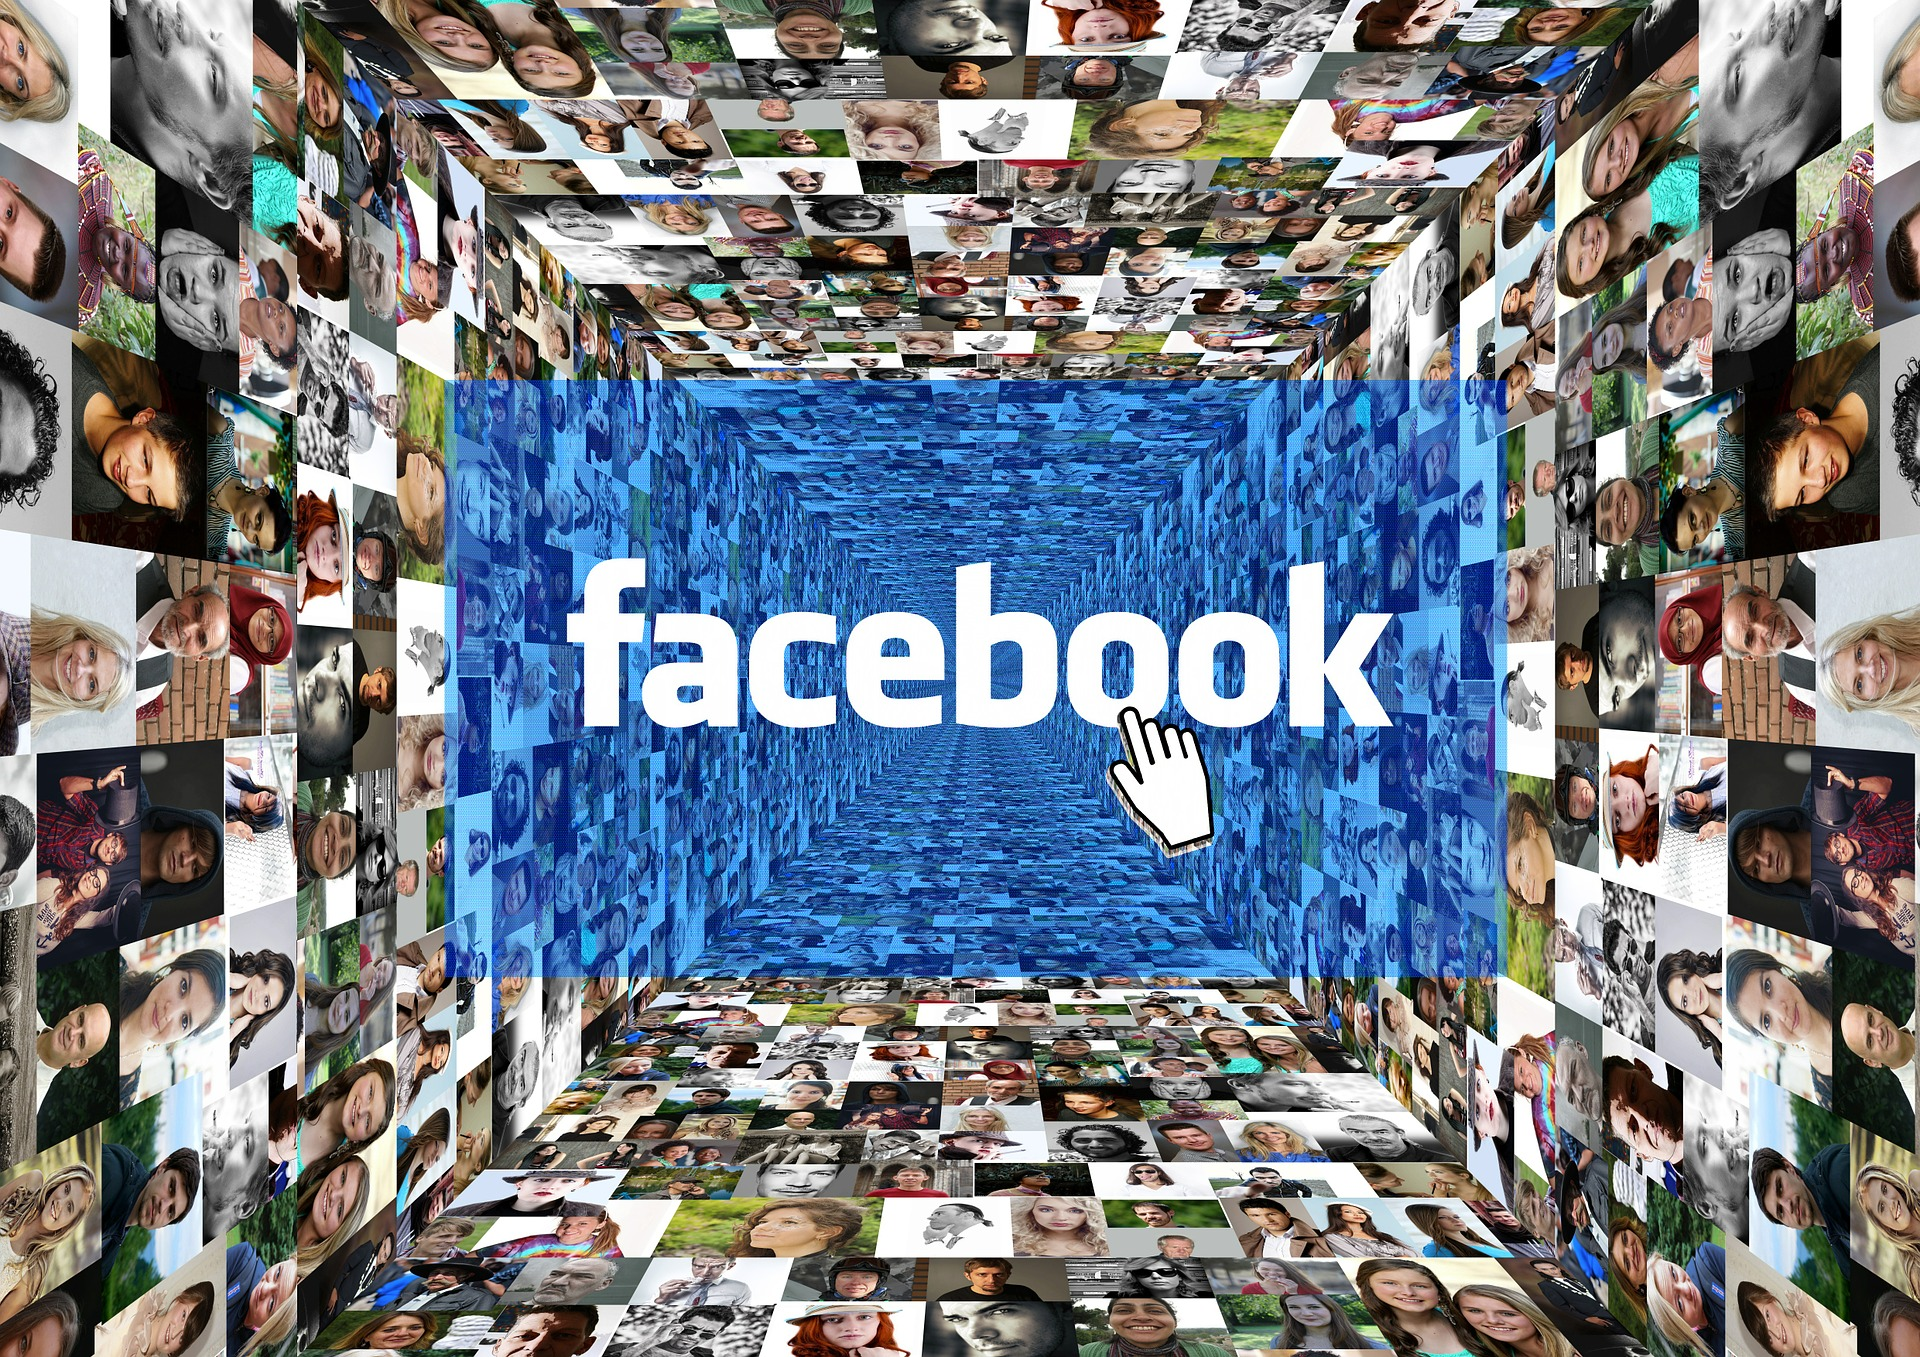 Facebooks Ads: How to Analyze Your Paid Ads on Social Media